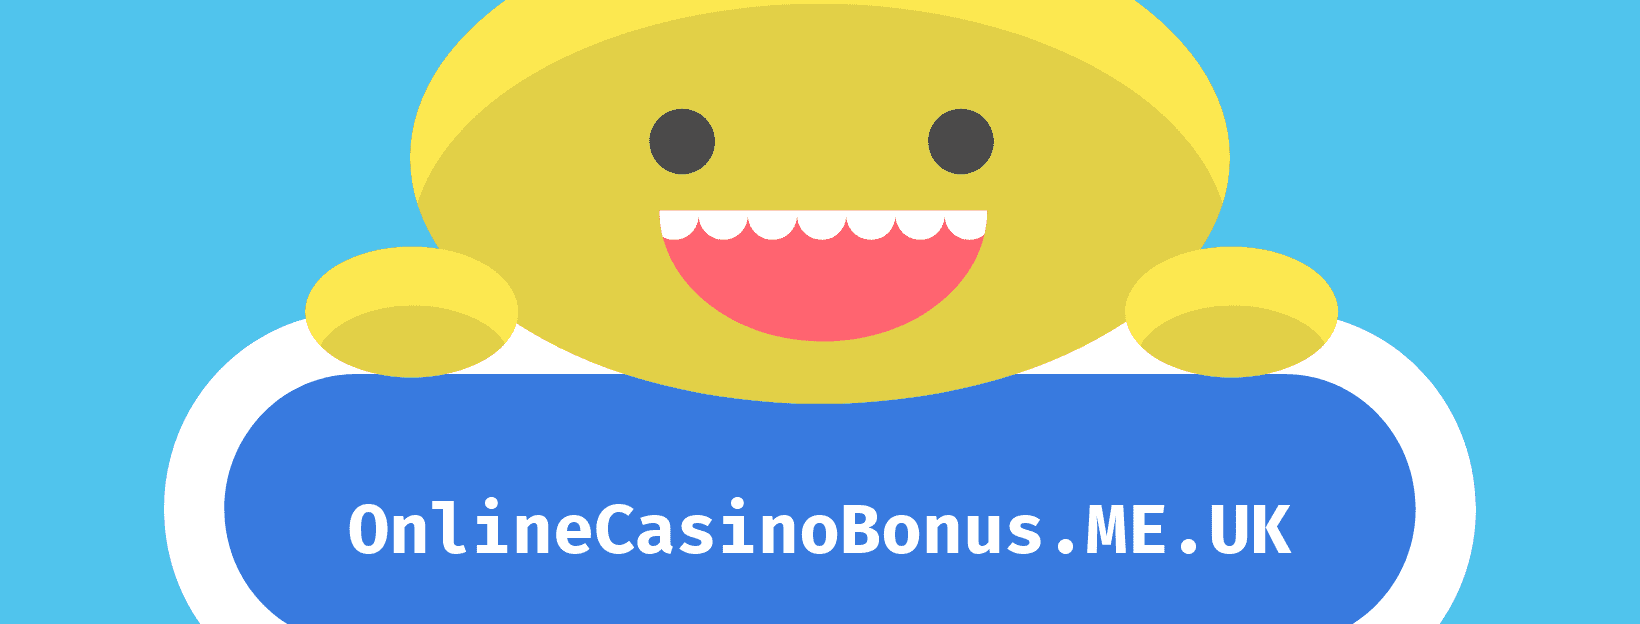 OnlineCasinoBonus.ME.UK